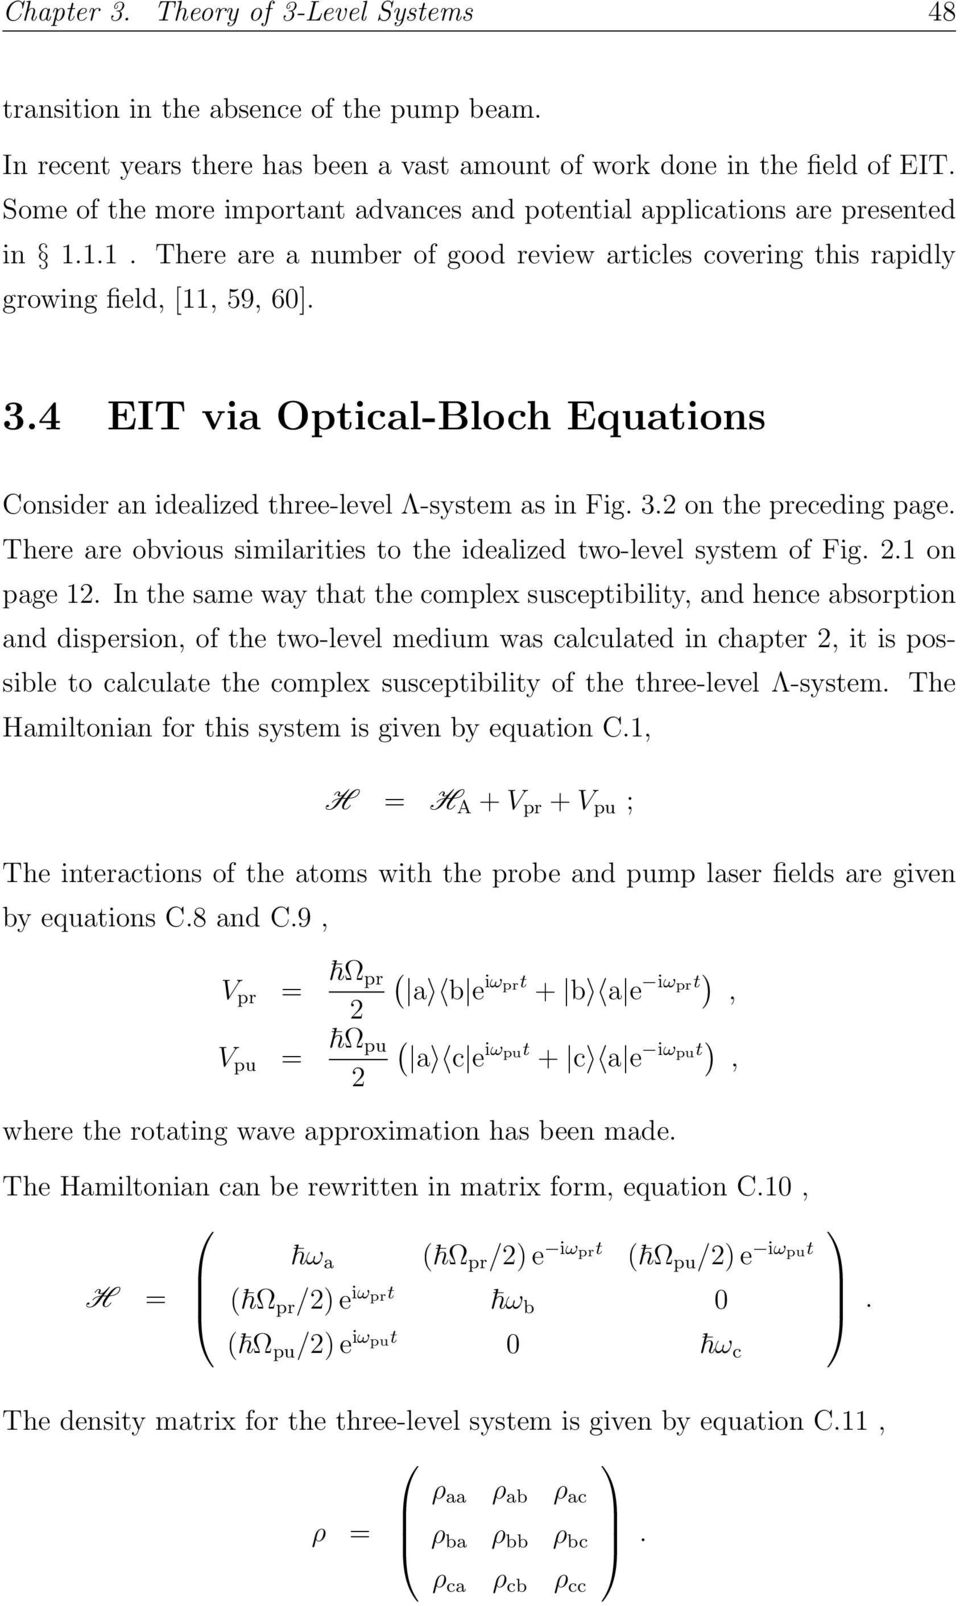 4 EIT via Optical-Bloch Equations Consider an idealized three-level Λ-system as in Fig. 3. on the preceding page. There are obvious similarities to the idealized two-level system of Fig..1 on page 1.